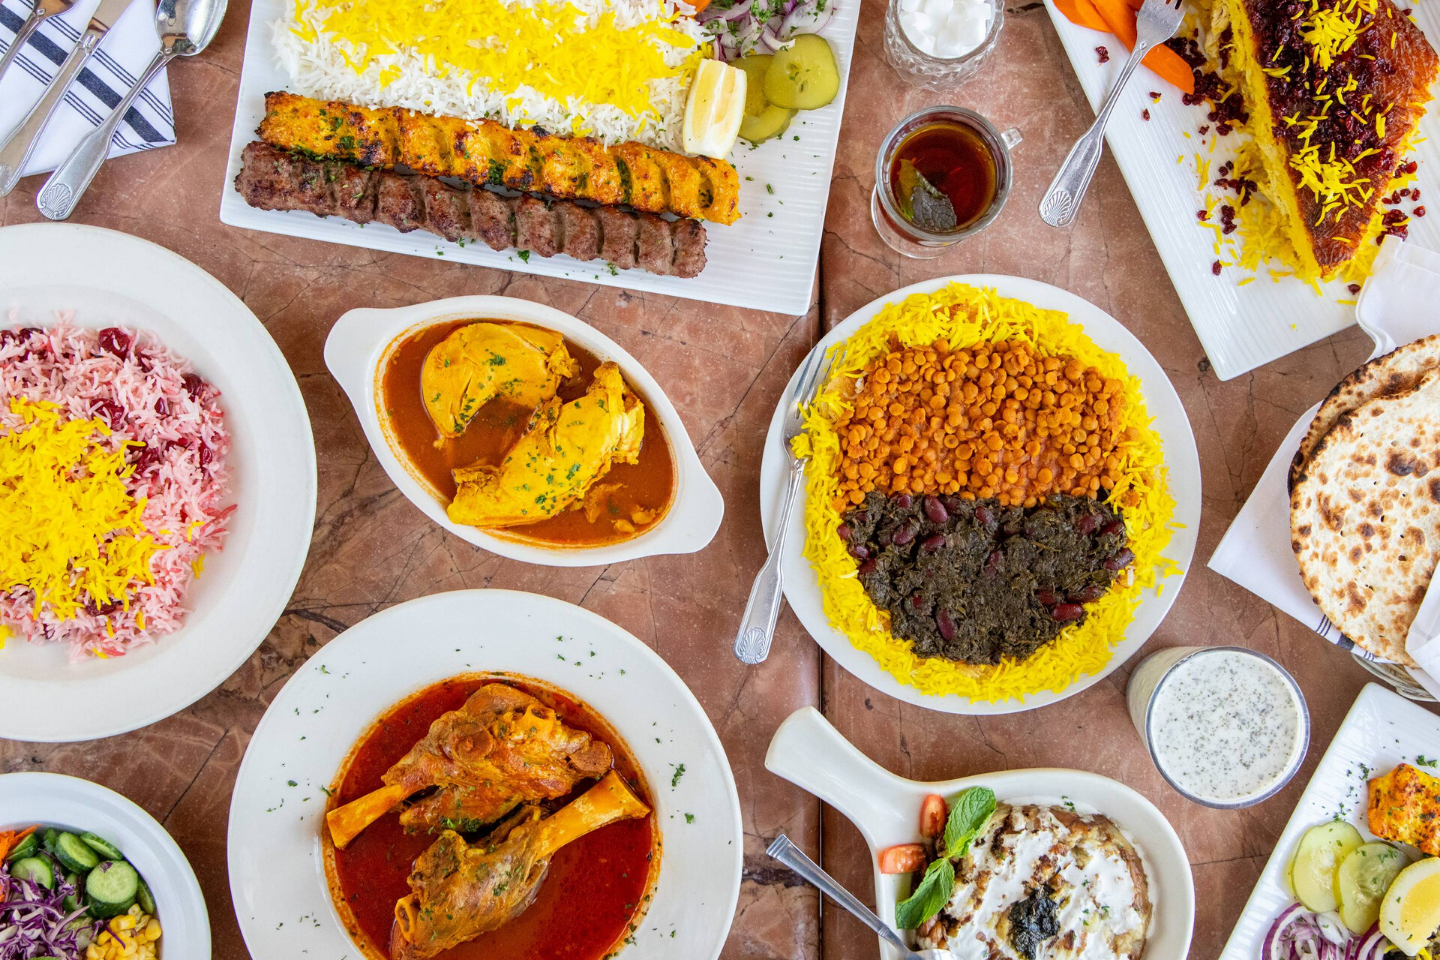 Shirin Restaurant | Persian Cuisine in the San Fernando Valley